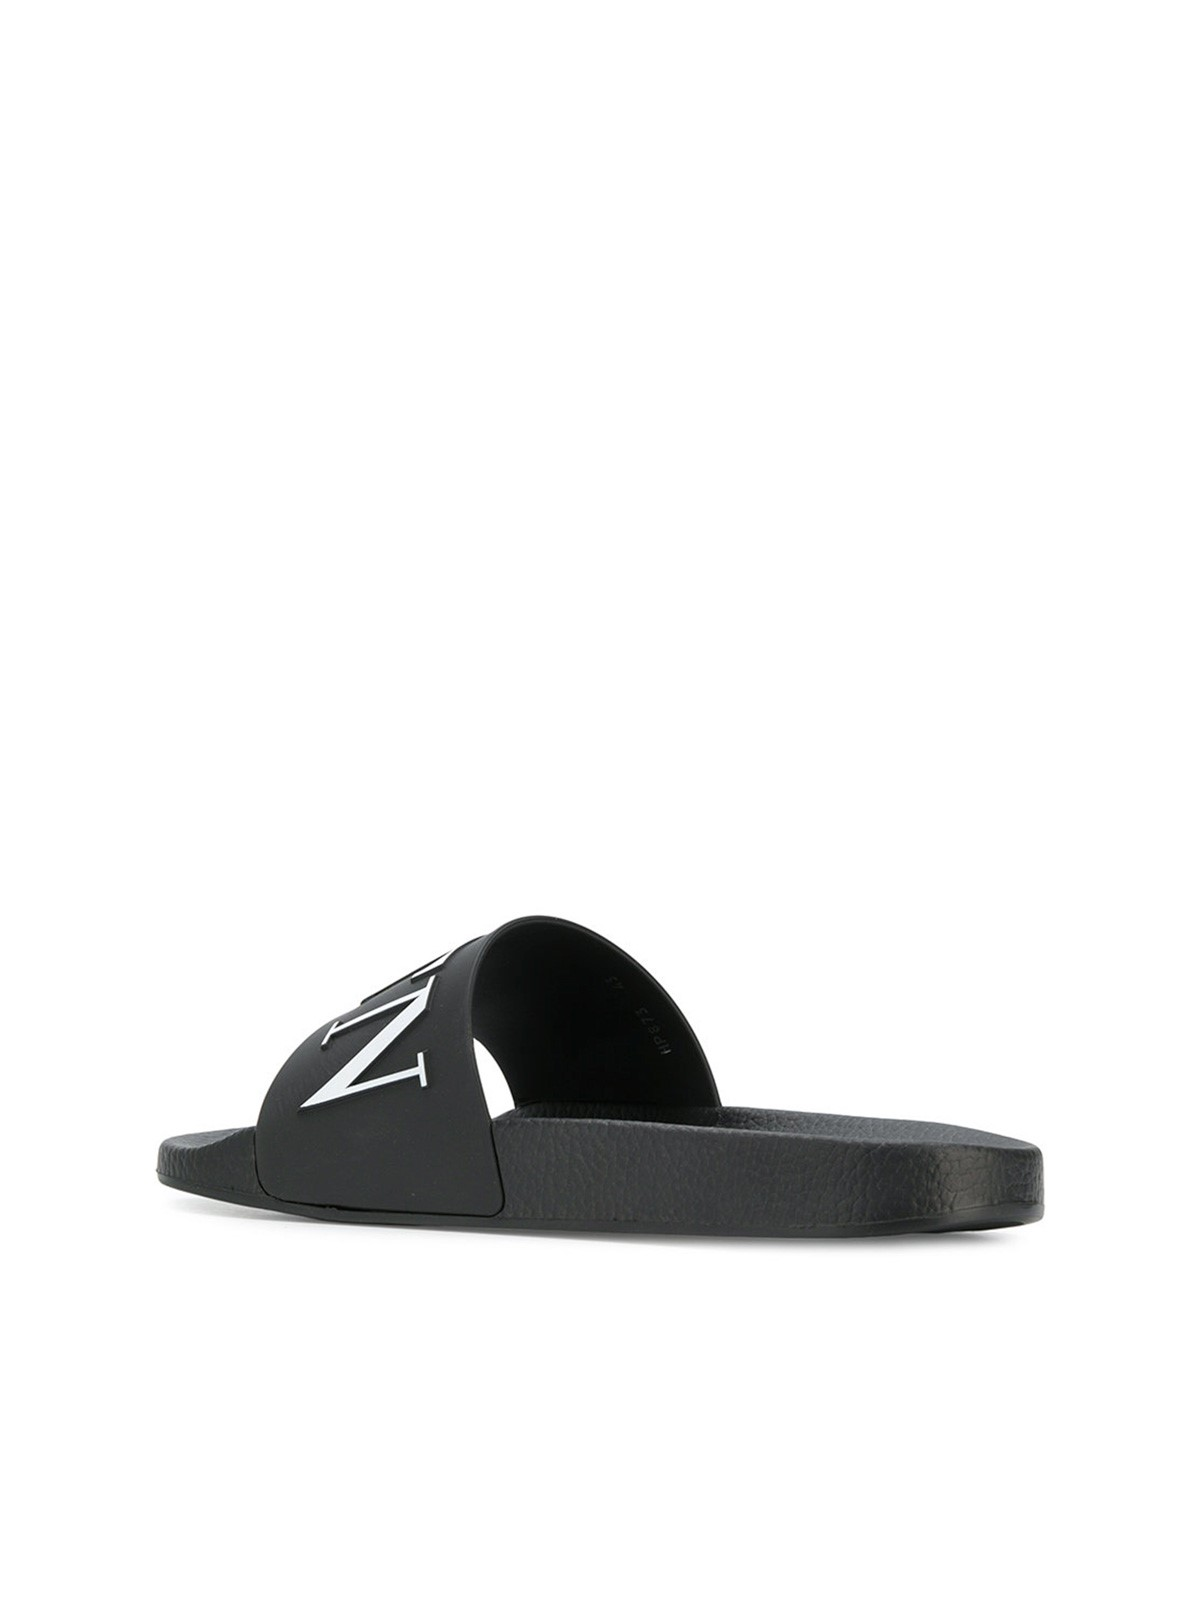 312eddbb954 valentino garavani LOGO VLTN SLIDES available on montiboutique.com ...